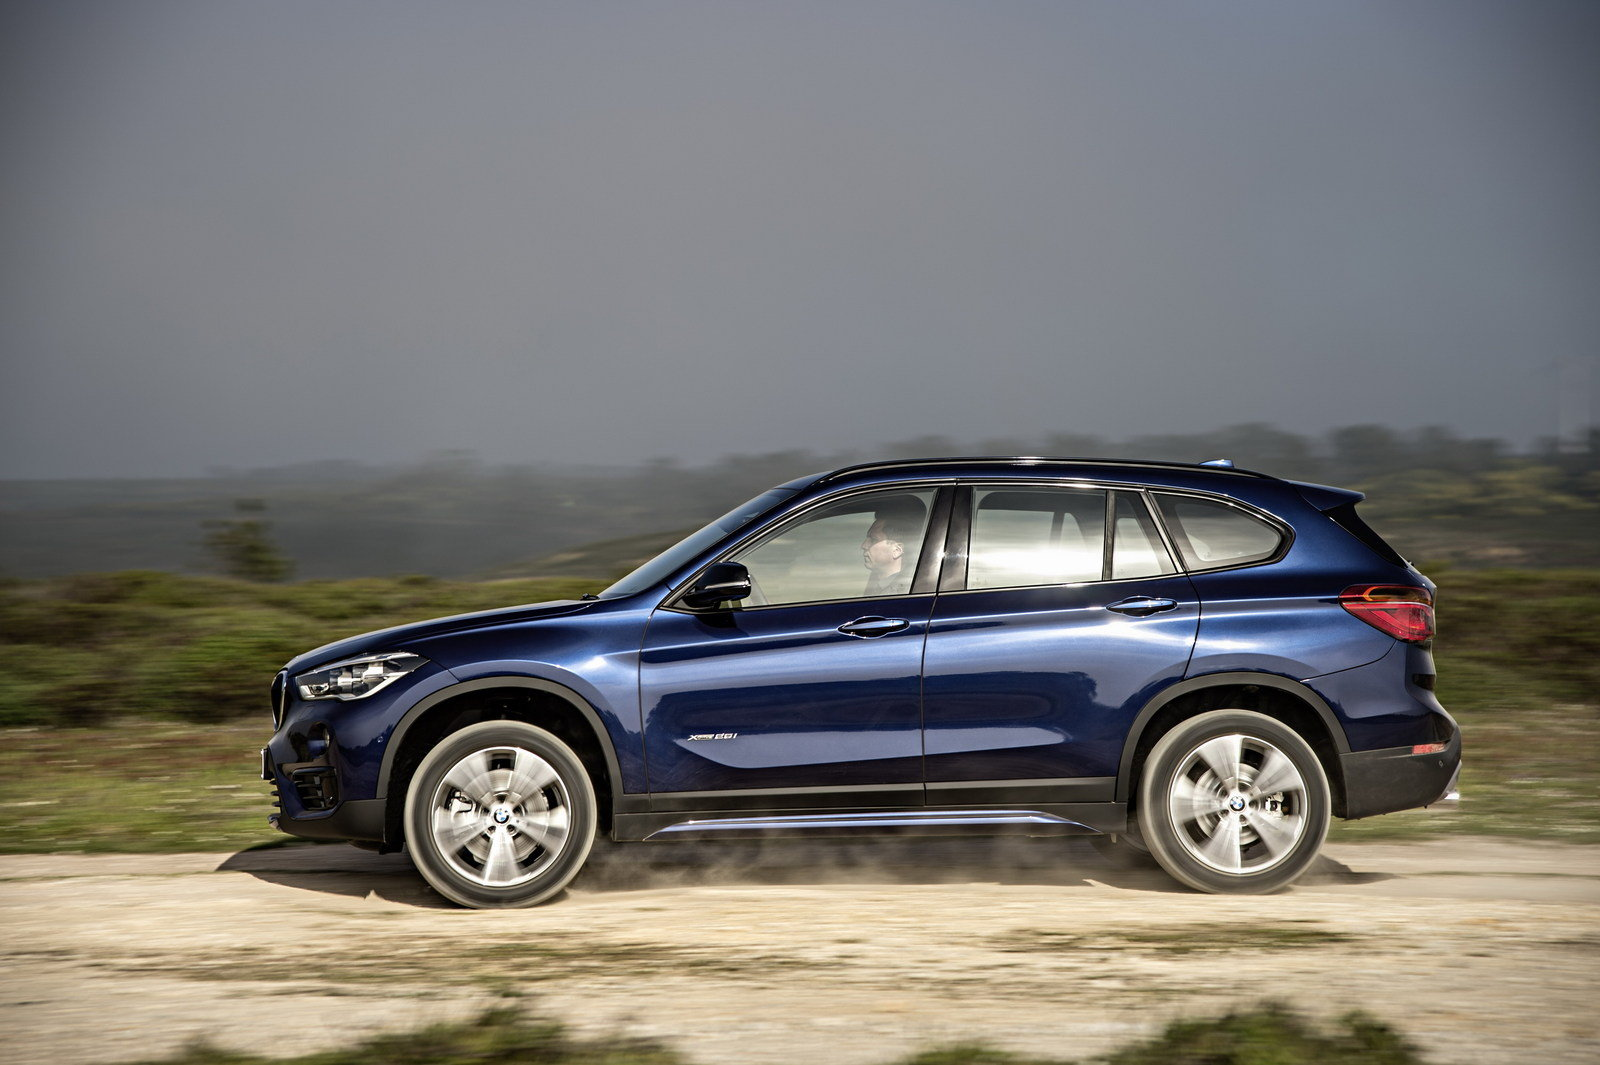 2016 bmw x1 picture 632440 car review top speed. Black Bedroom Furniture Sets. Home Design Ideas